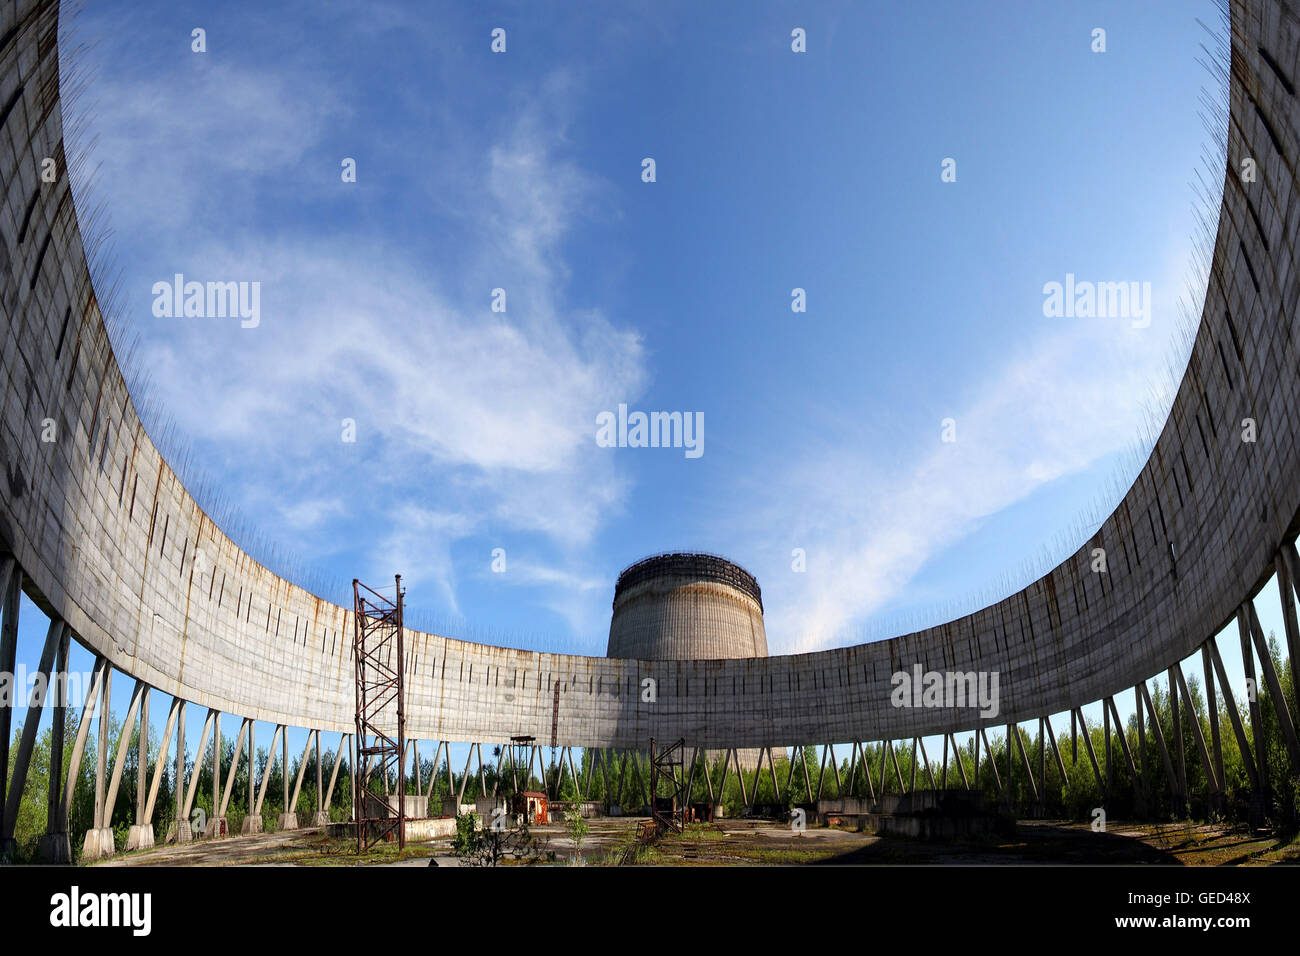 Cooling towers seen inside Chernobyl exclusion zone, Ukraine - Stock Image